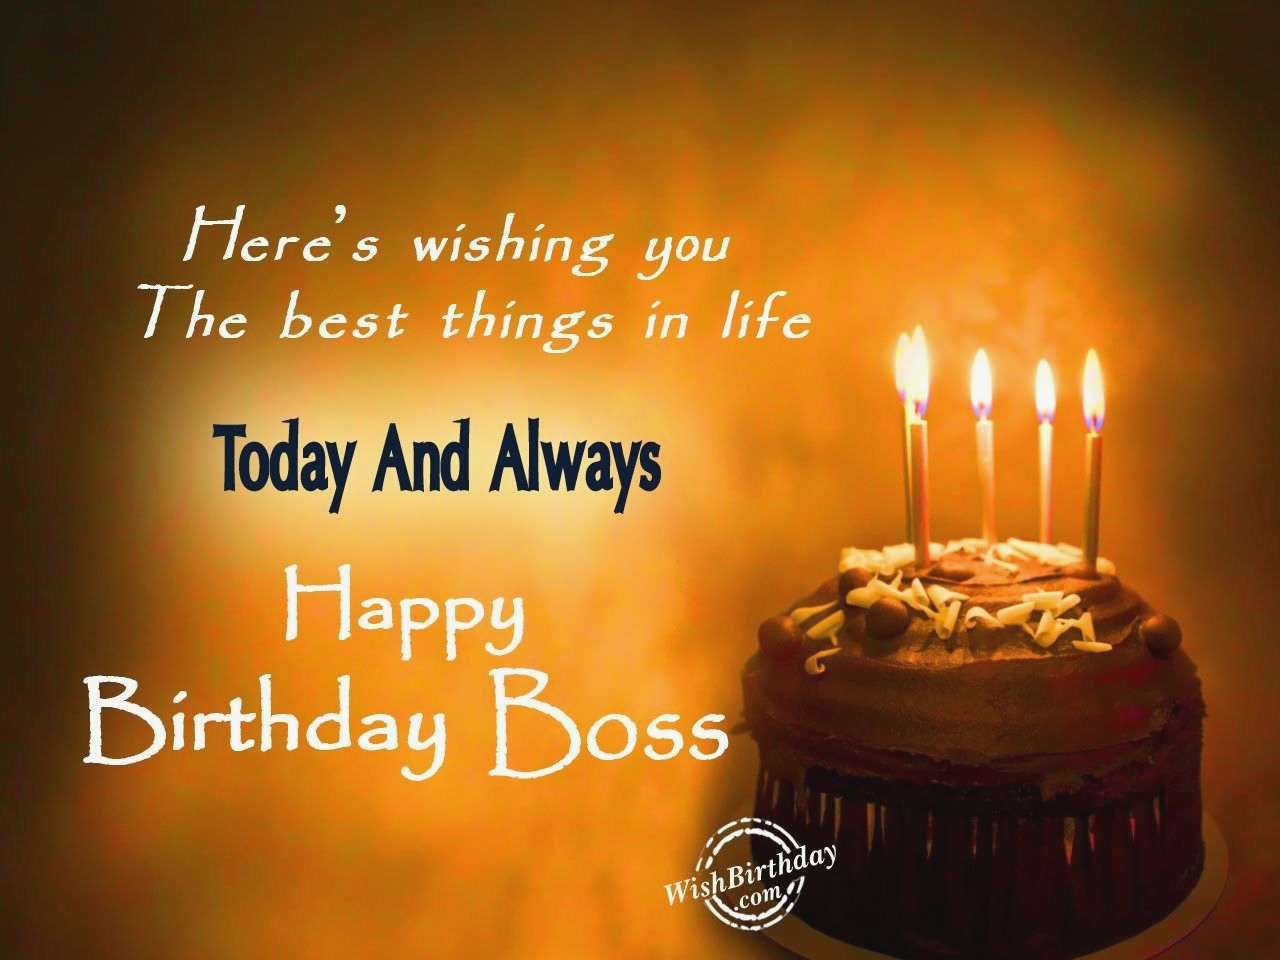 Code Url Azbirthdaywishes Birthday Wishes For Boss Pictures